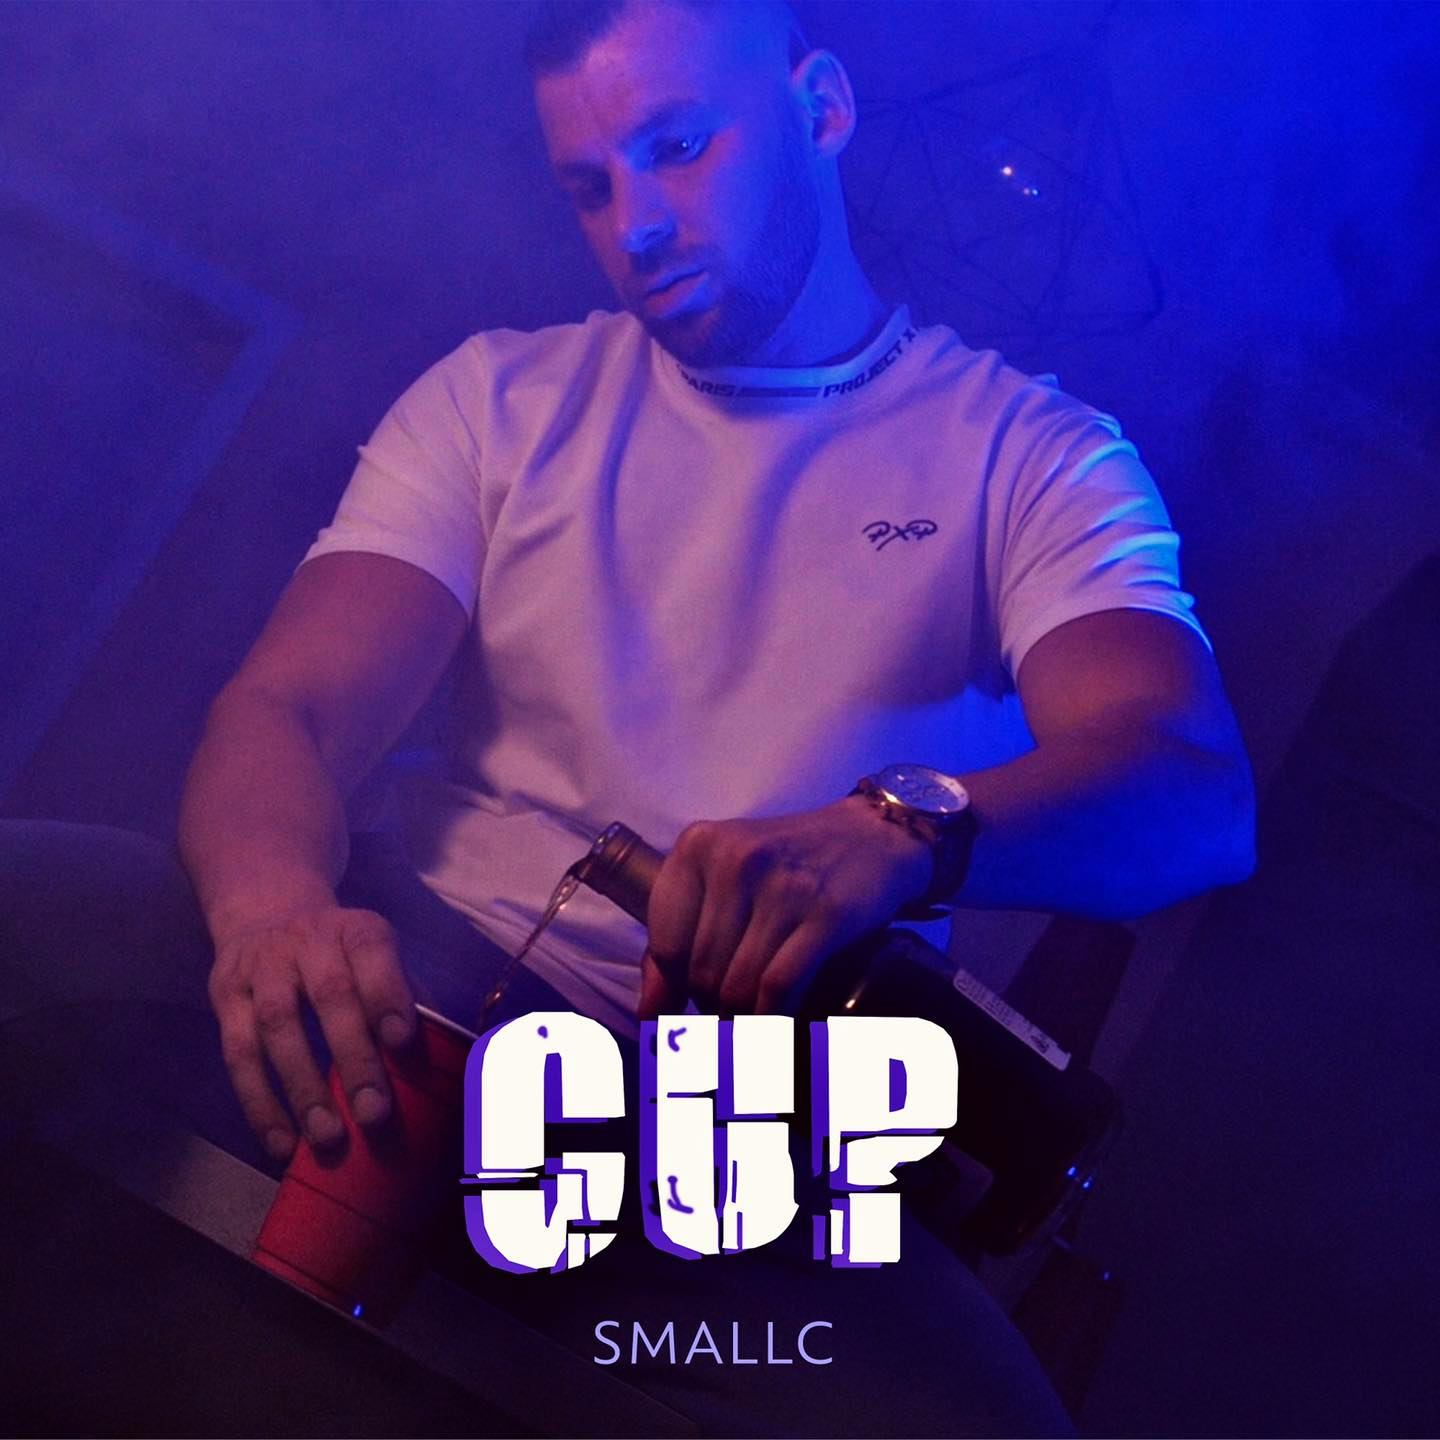 Upcoming: Smallc - Cup  [official Video] Beat By The Cratez